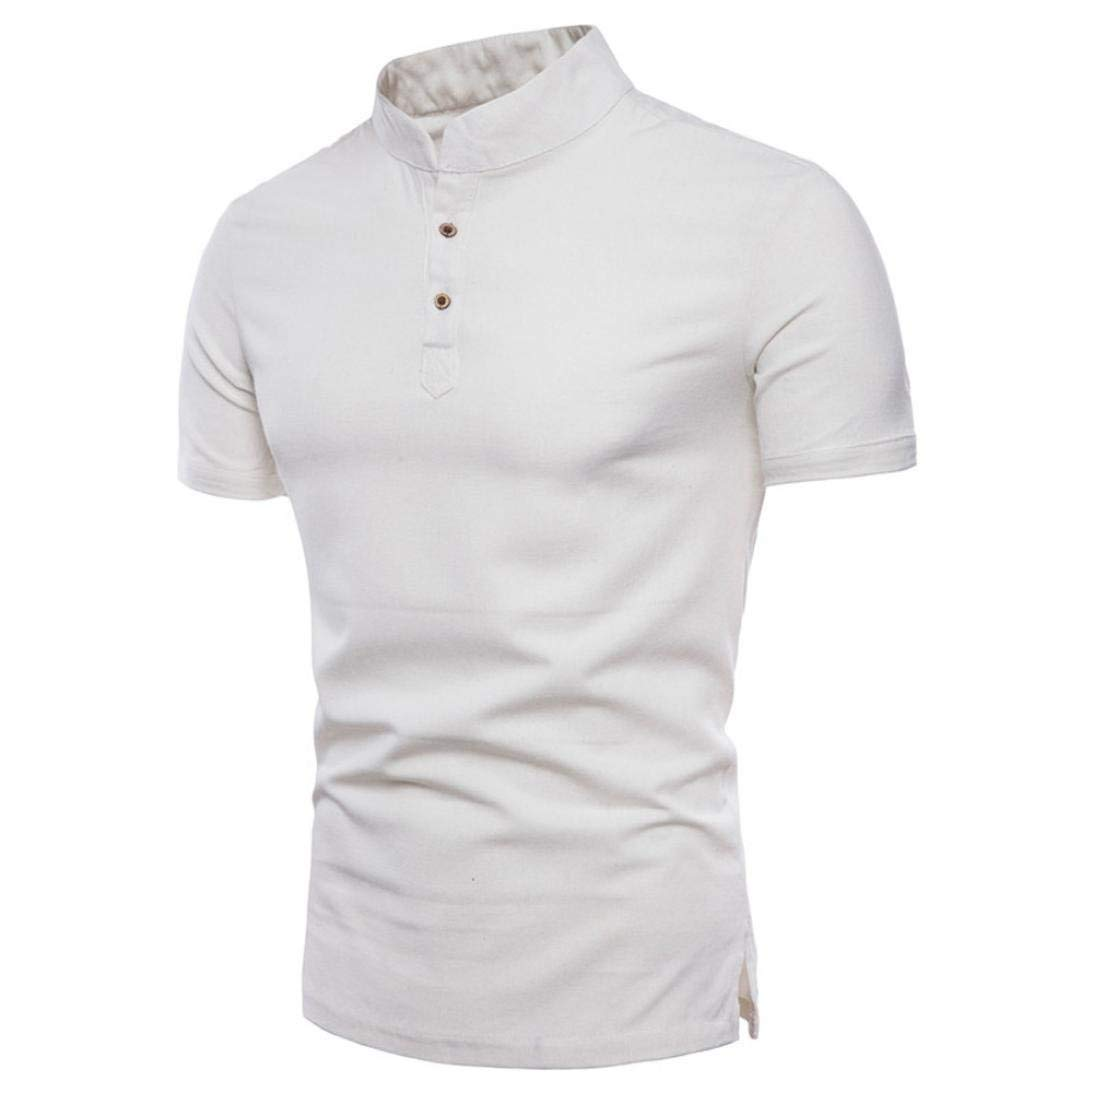 Cheap Mens Golf Tops Find Mens Golf Tops Deals On Line At Alibaba